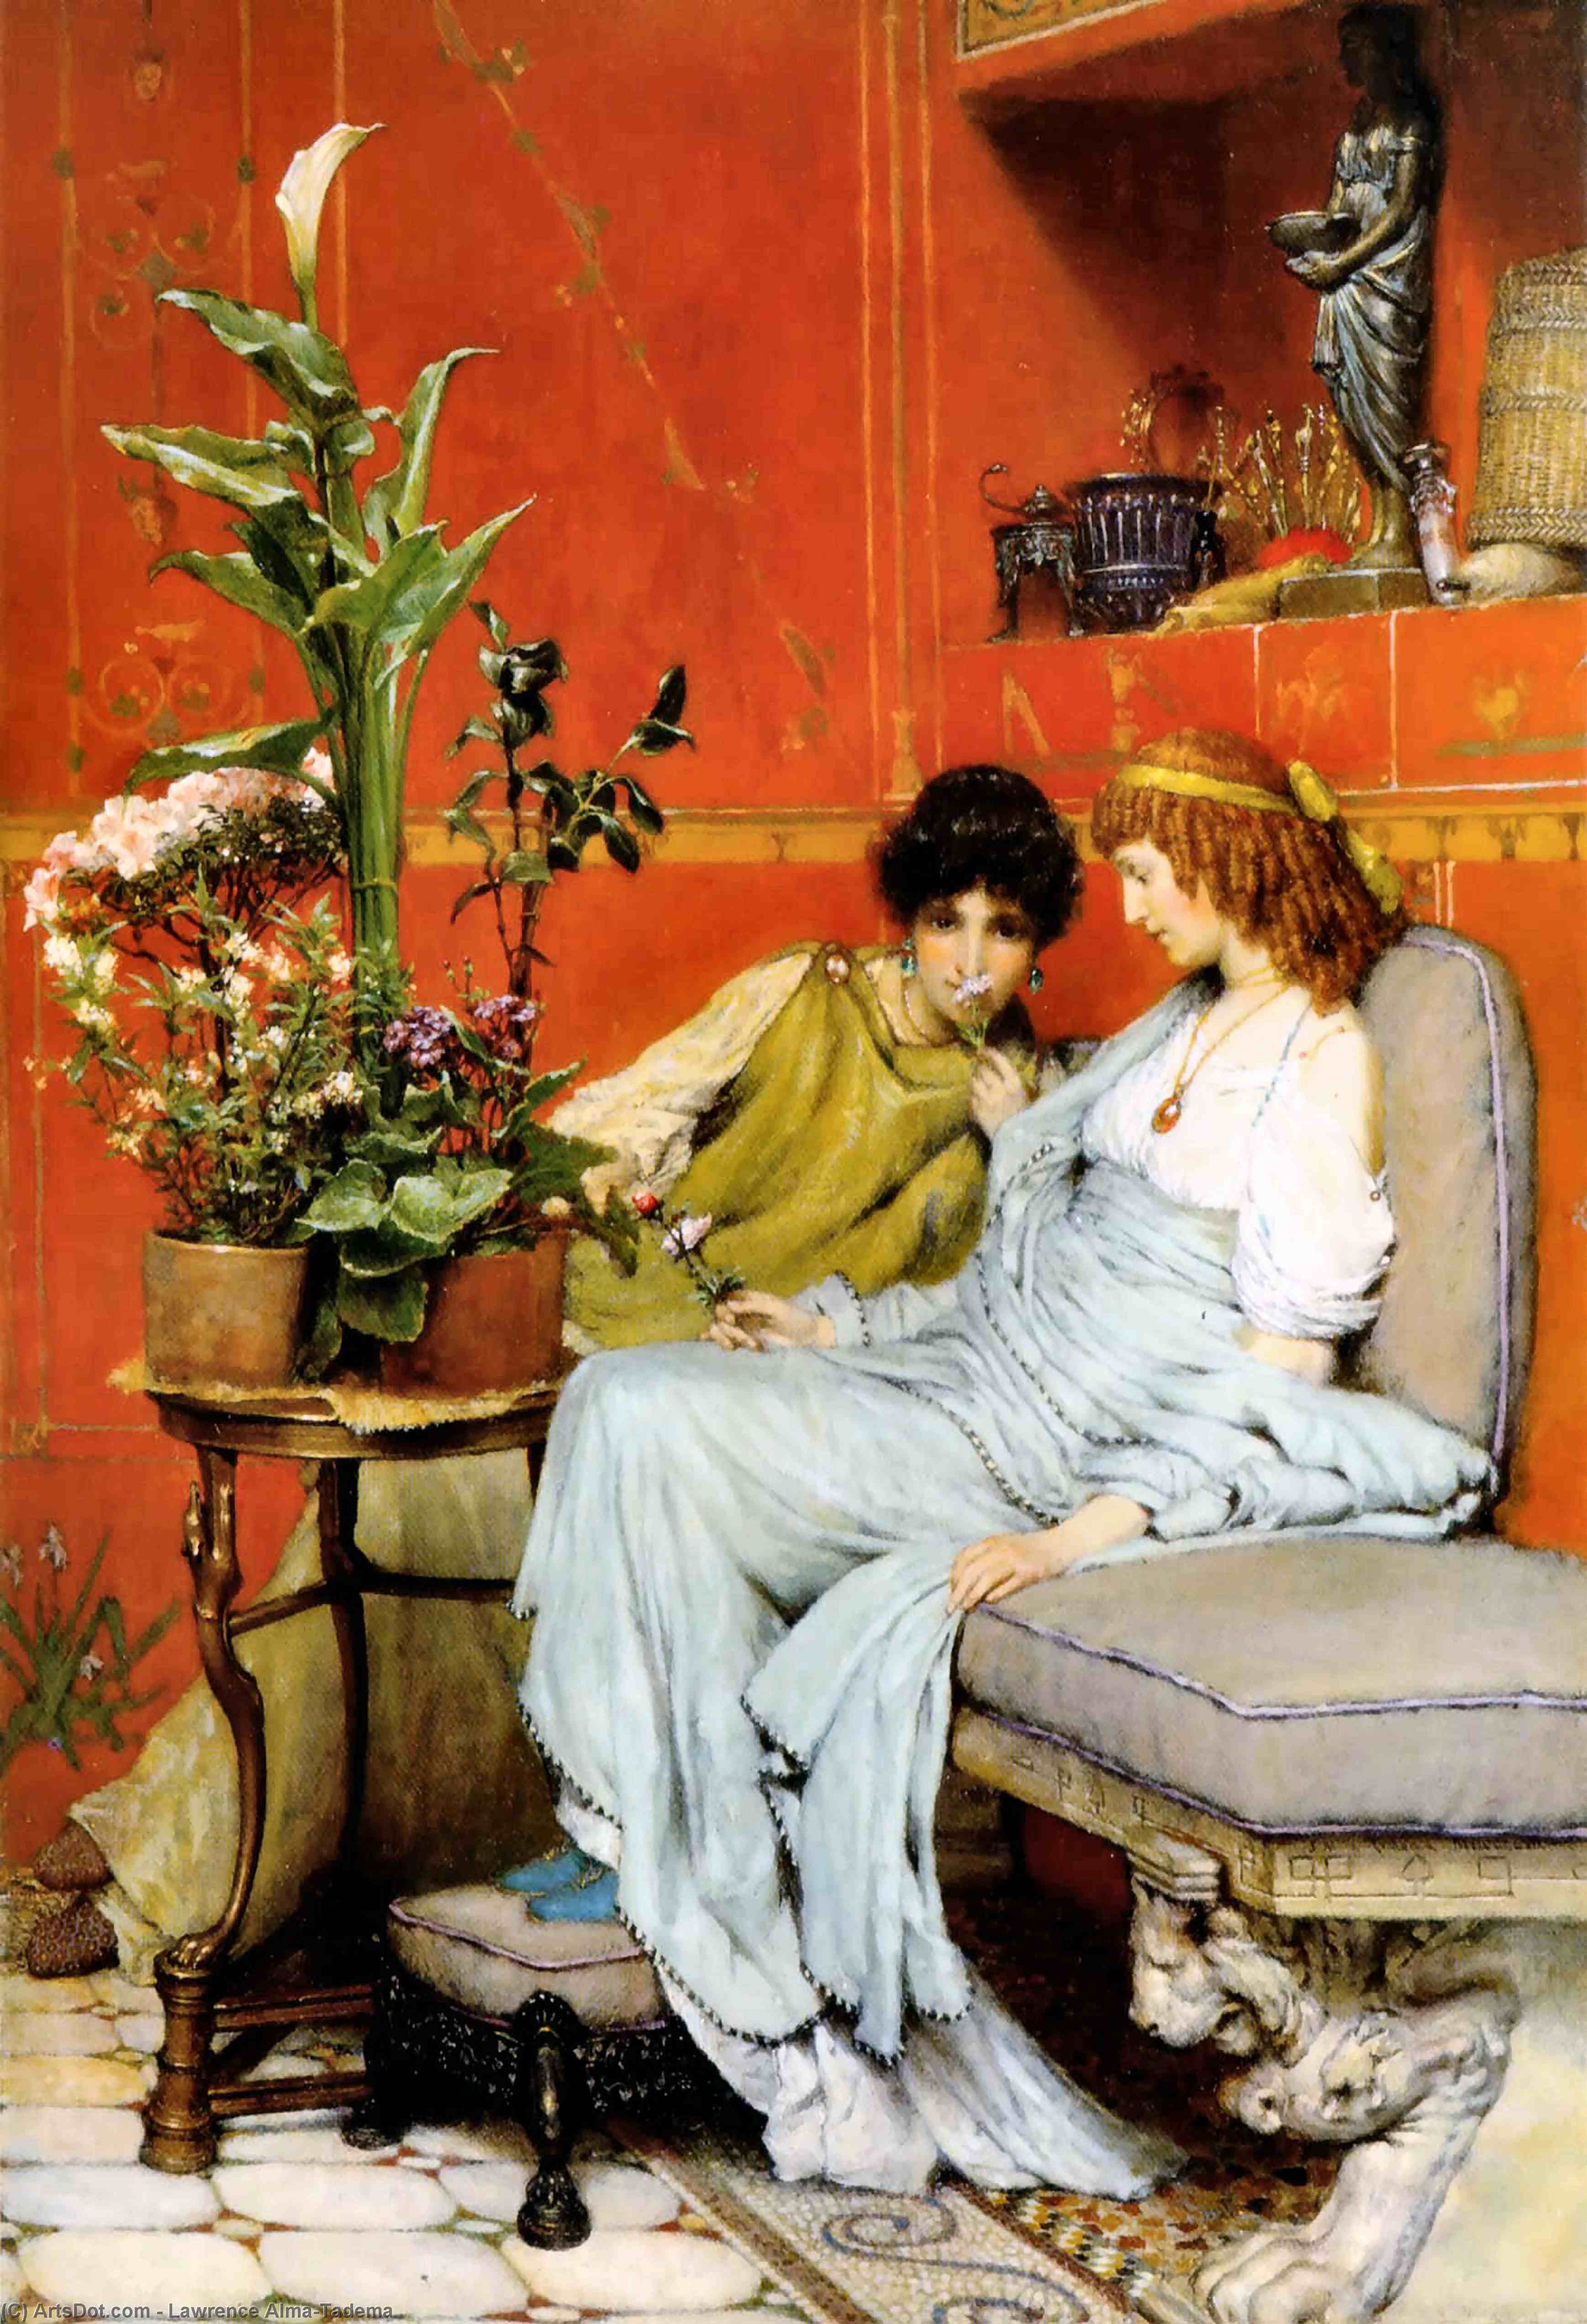 Wikioo.org - The Encyclopedia of Fine Arts - Painting, Artwork by Lawrence Alma-Tadema - Confidences